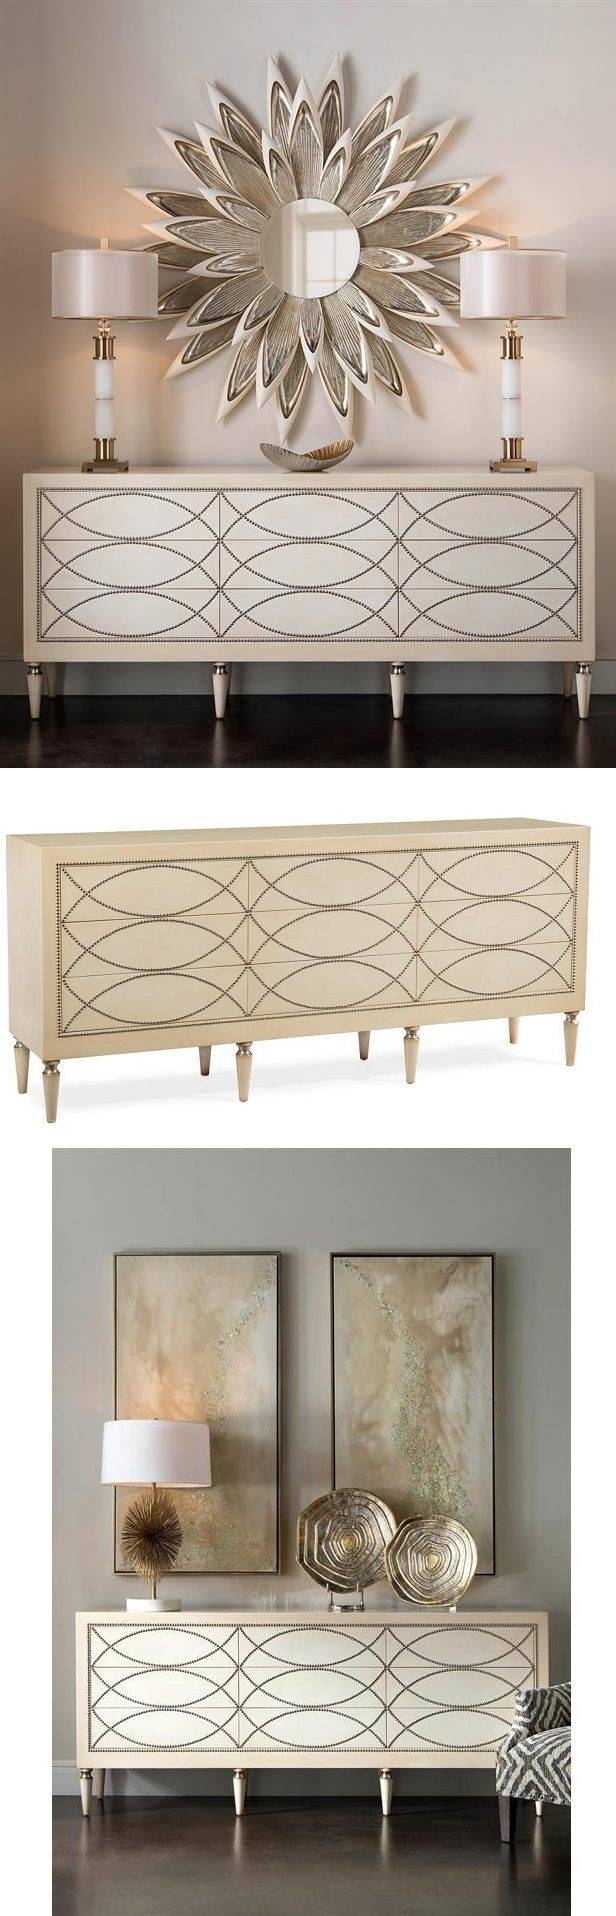 Charming Dining Room Sideboard Beautiful Servers Sideboards And Throughout 2018 Sideboards And Servers (View 14 of 15)